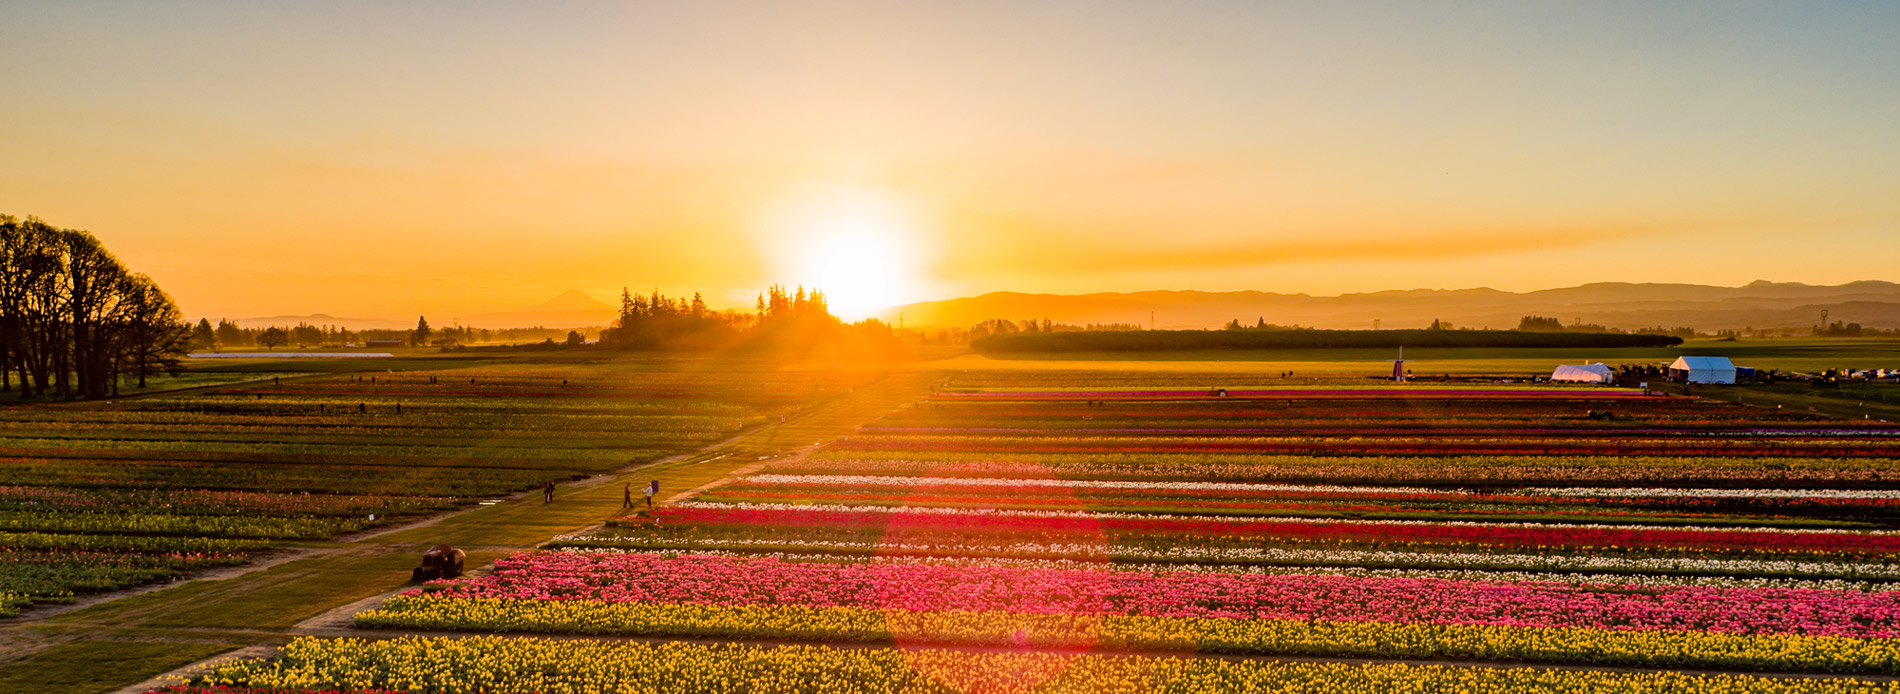 Wooden Shoe Tulip Farm at sunset